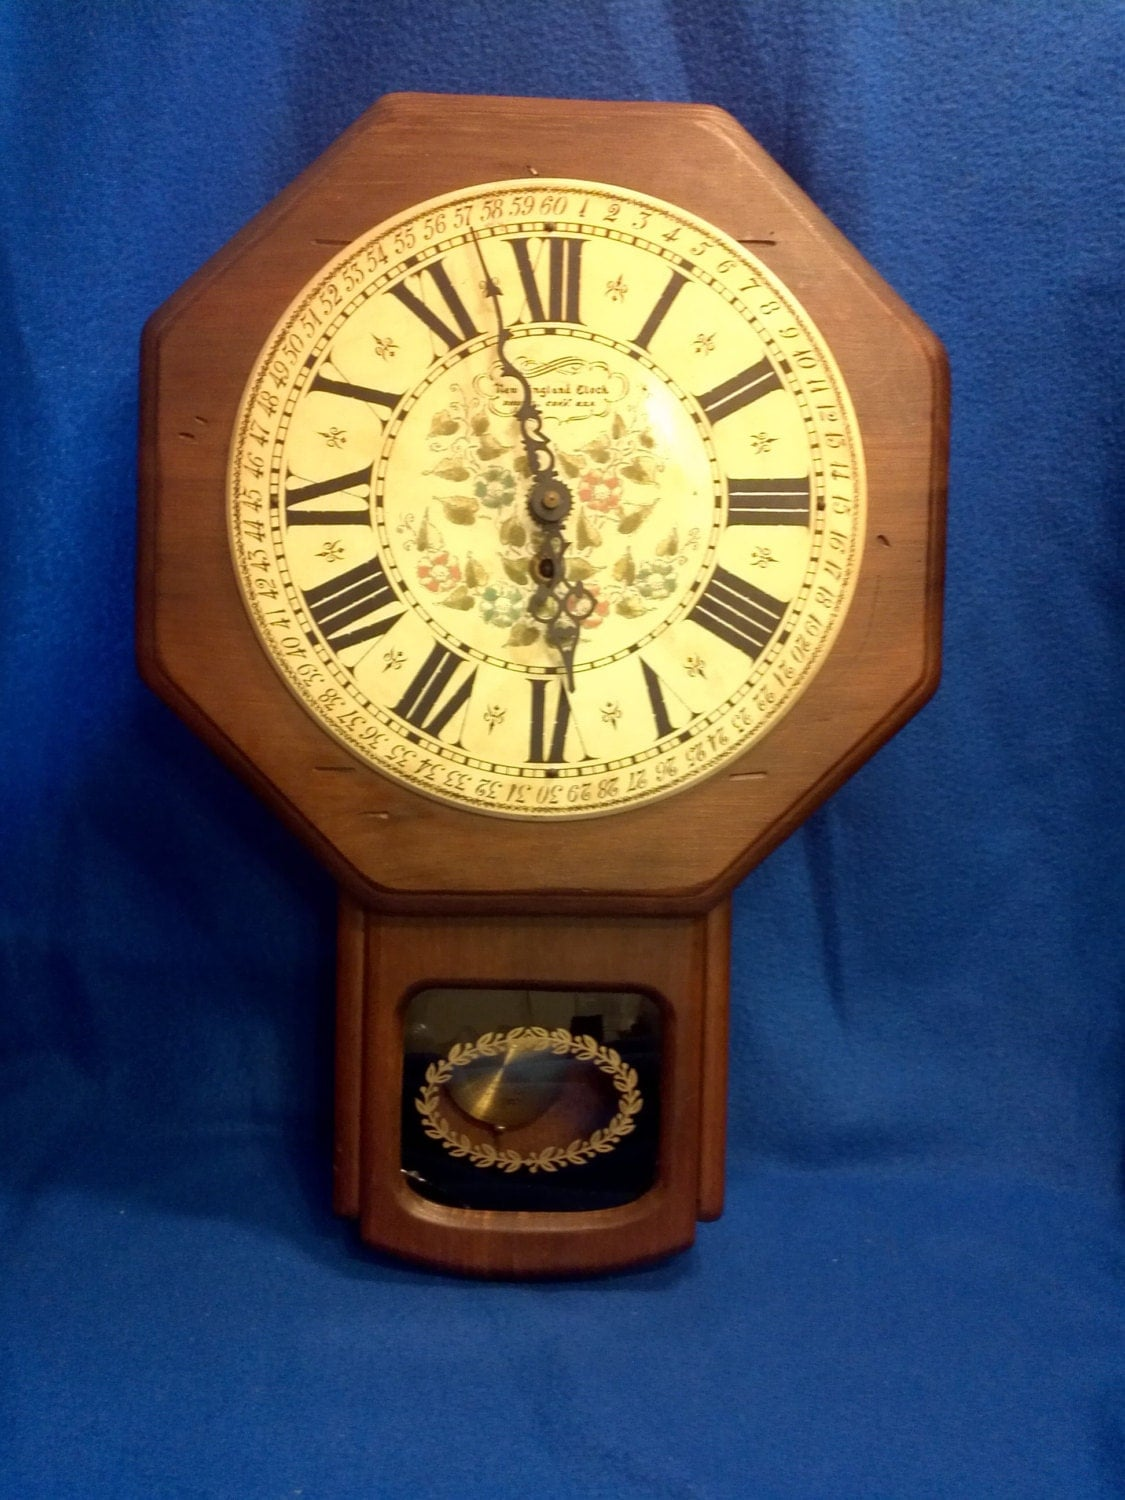 A New England Clock Co Wind Up Wall Clock